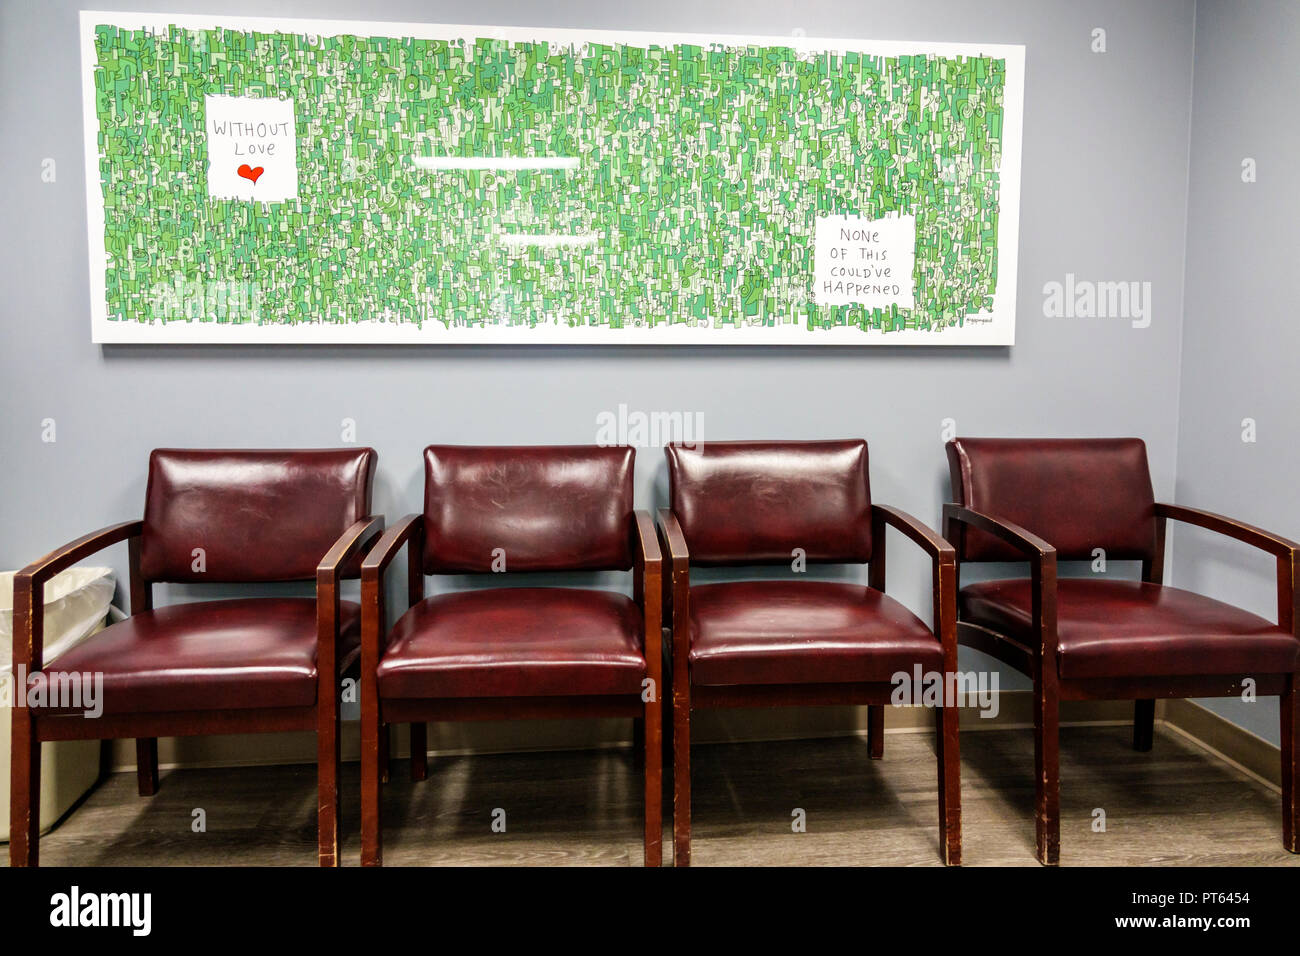 Miami Beach Florida Mount Mt. Sinai Medical Center centre waiting room - Stock Image